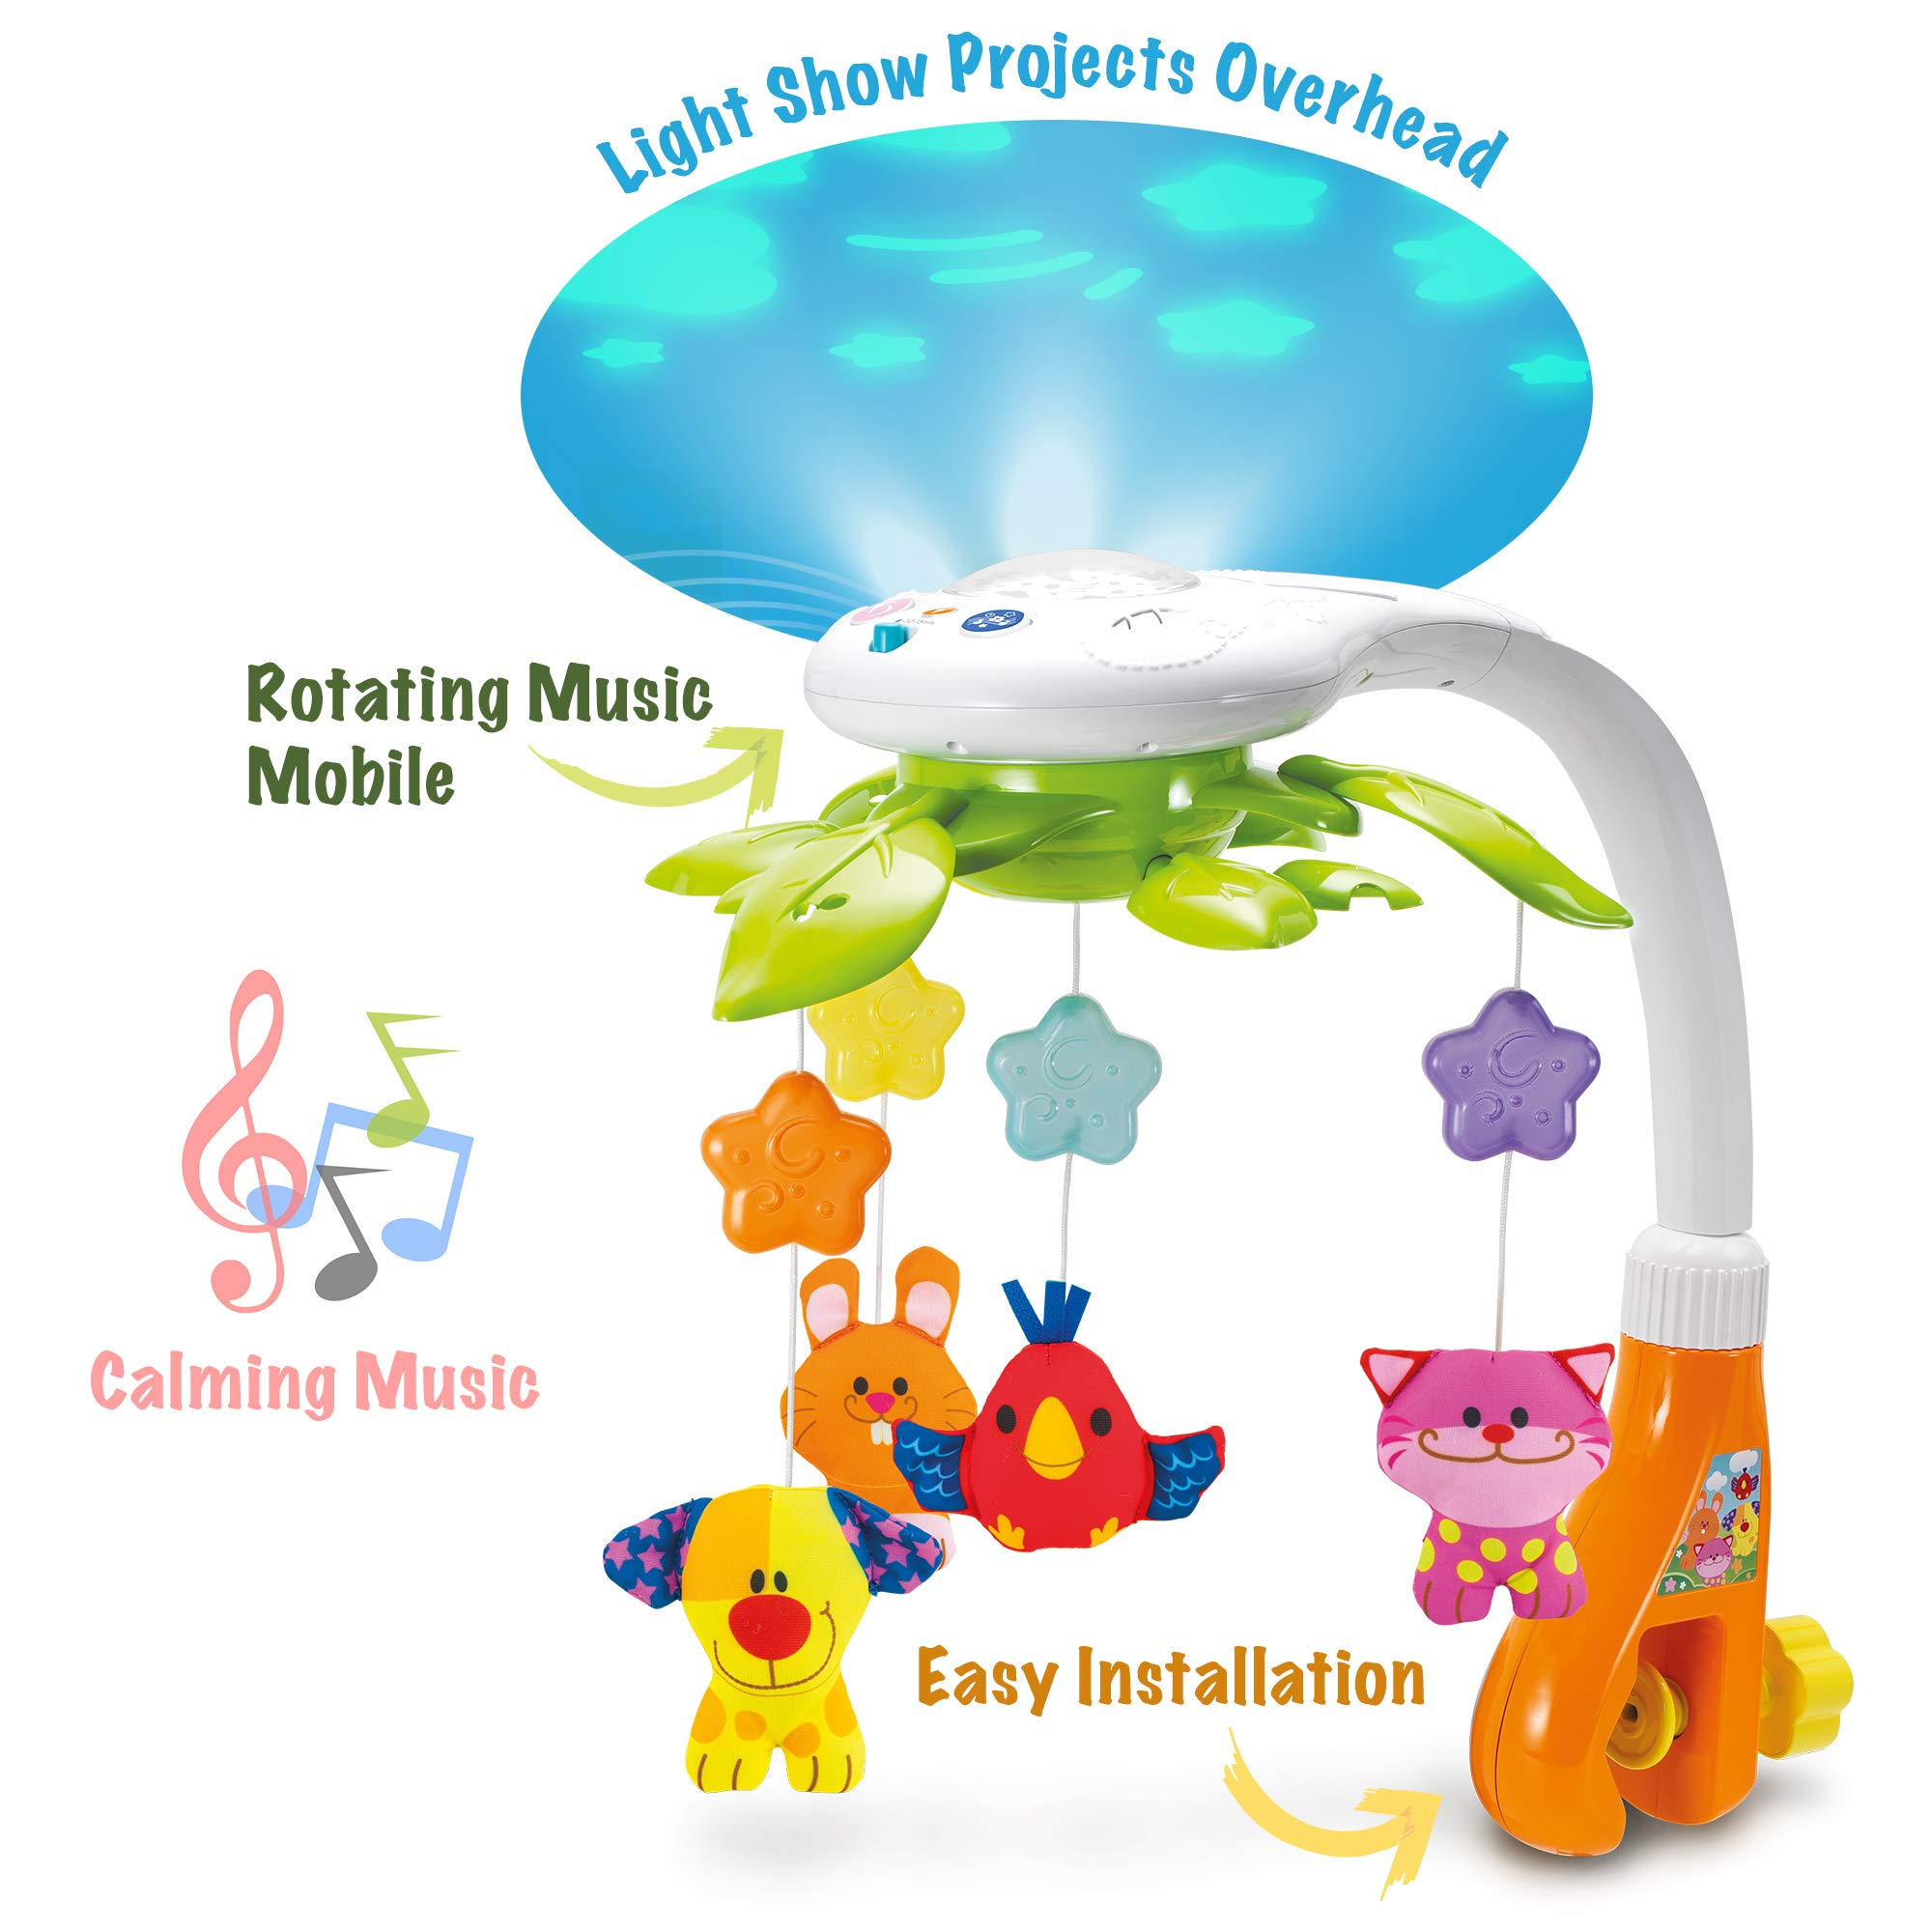 KiddoLab Baby Crib Mobile with Lights and Relaxing Music. Includes Ceiling Light Projector with Stars, Animals. Musical Crib Mobile with Timer. Nursery Toys for Babies Ages 0 and Older